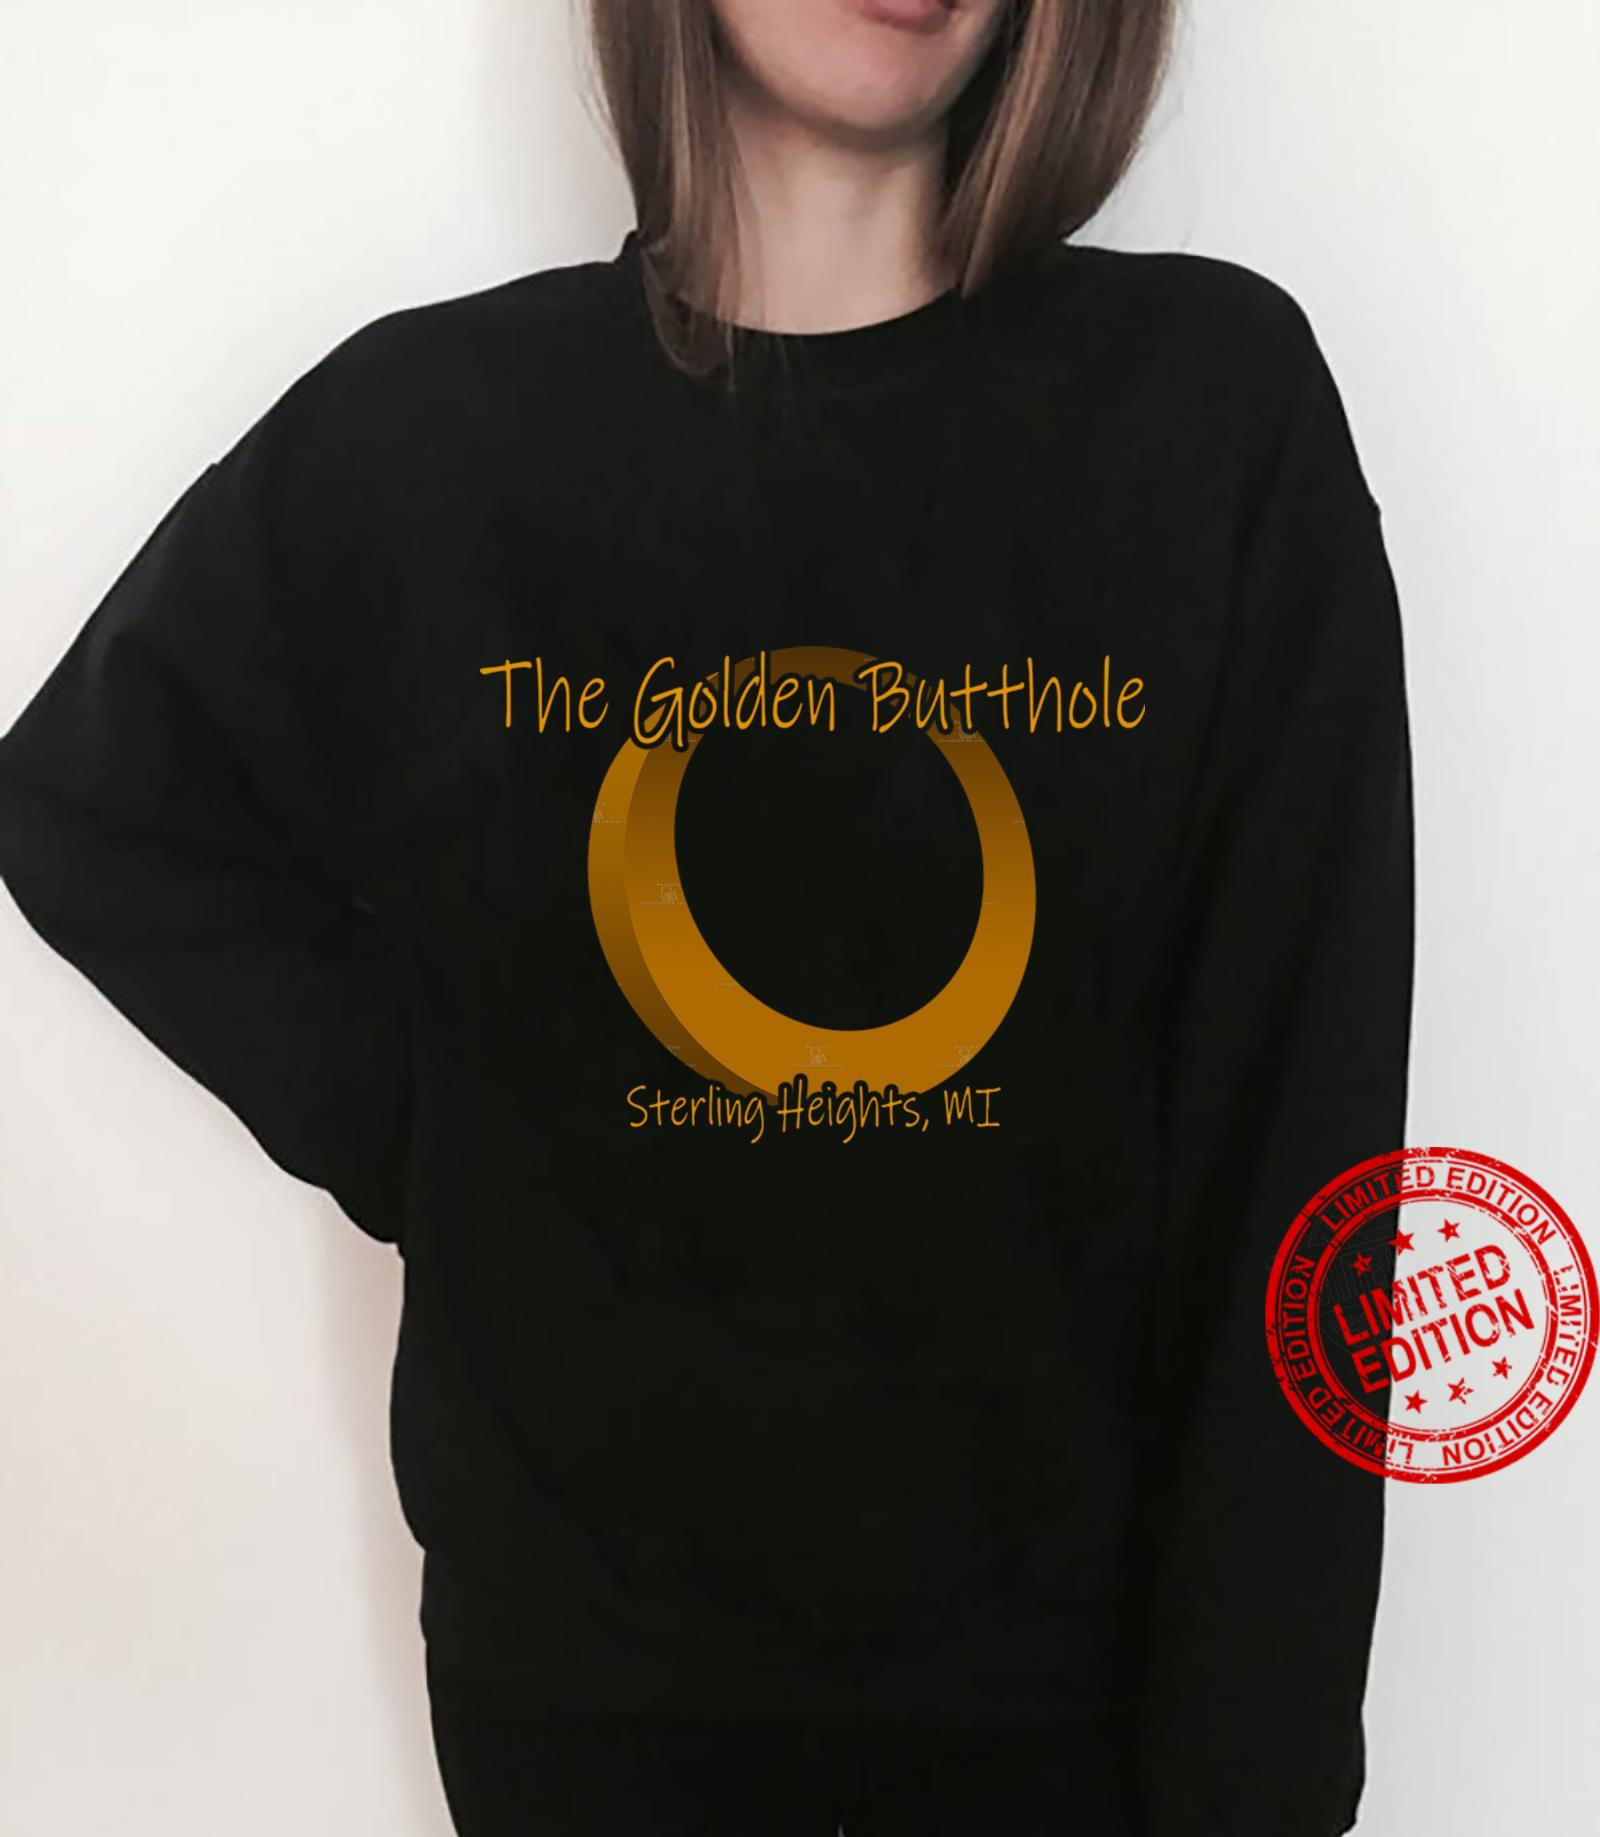 The Golden But Thole sterling heights shirt sweater